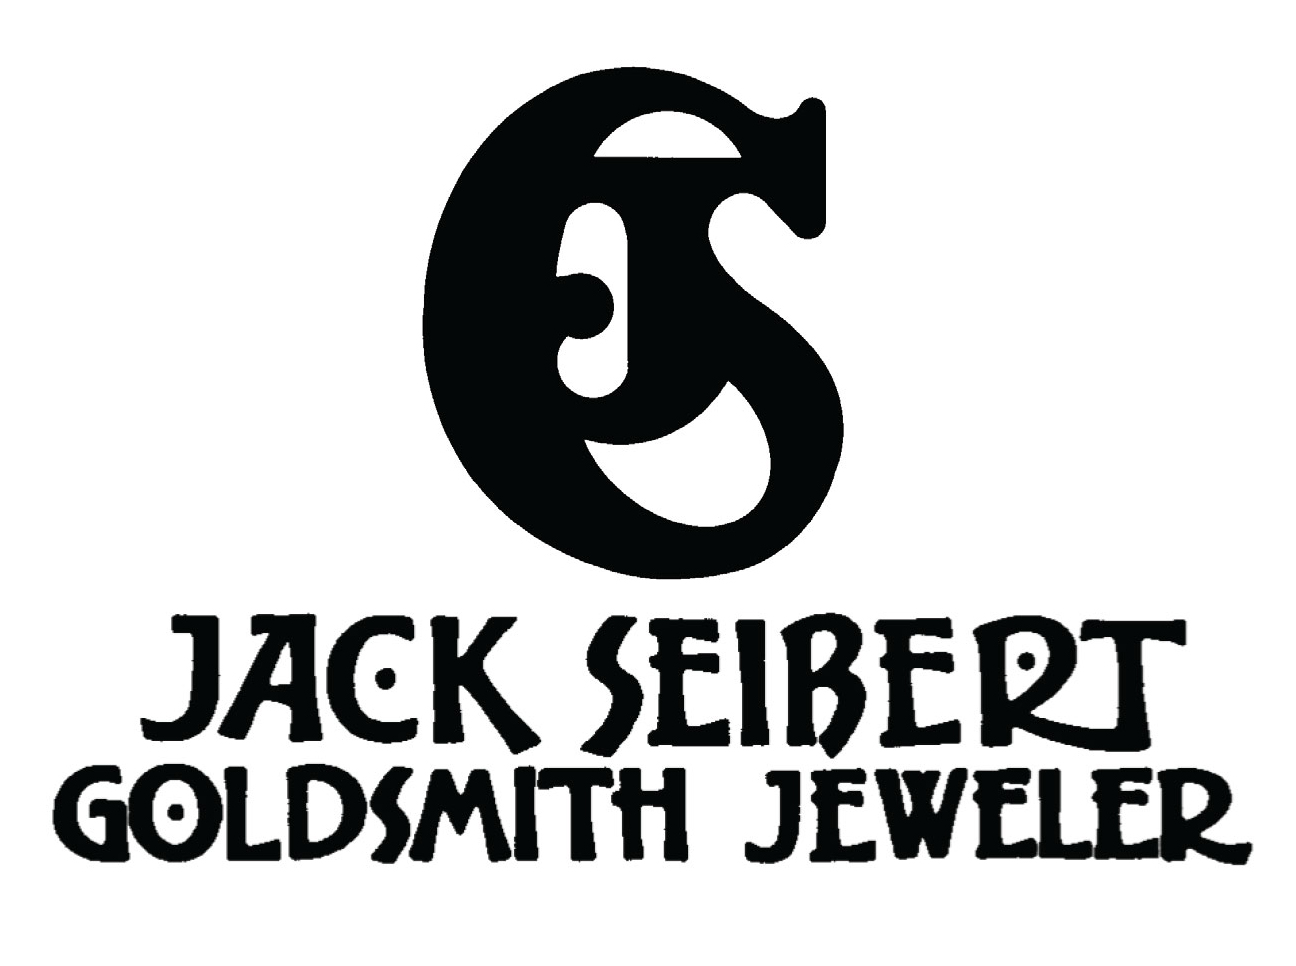 Jack Seibert Goldsmith and Jeweler